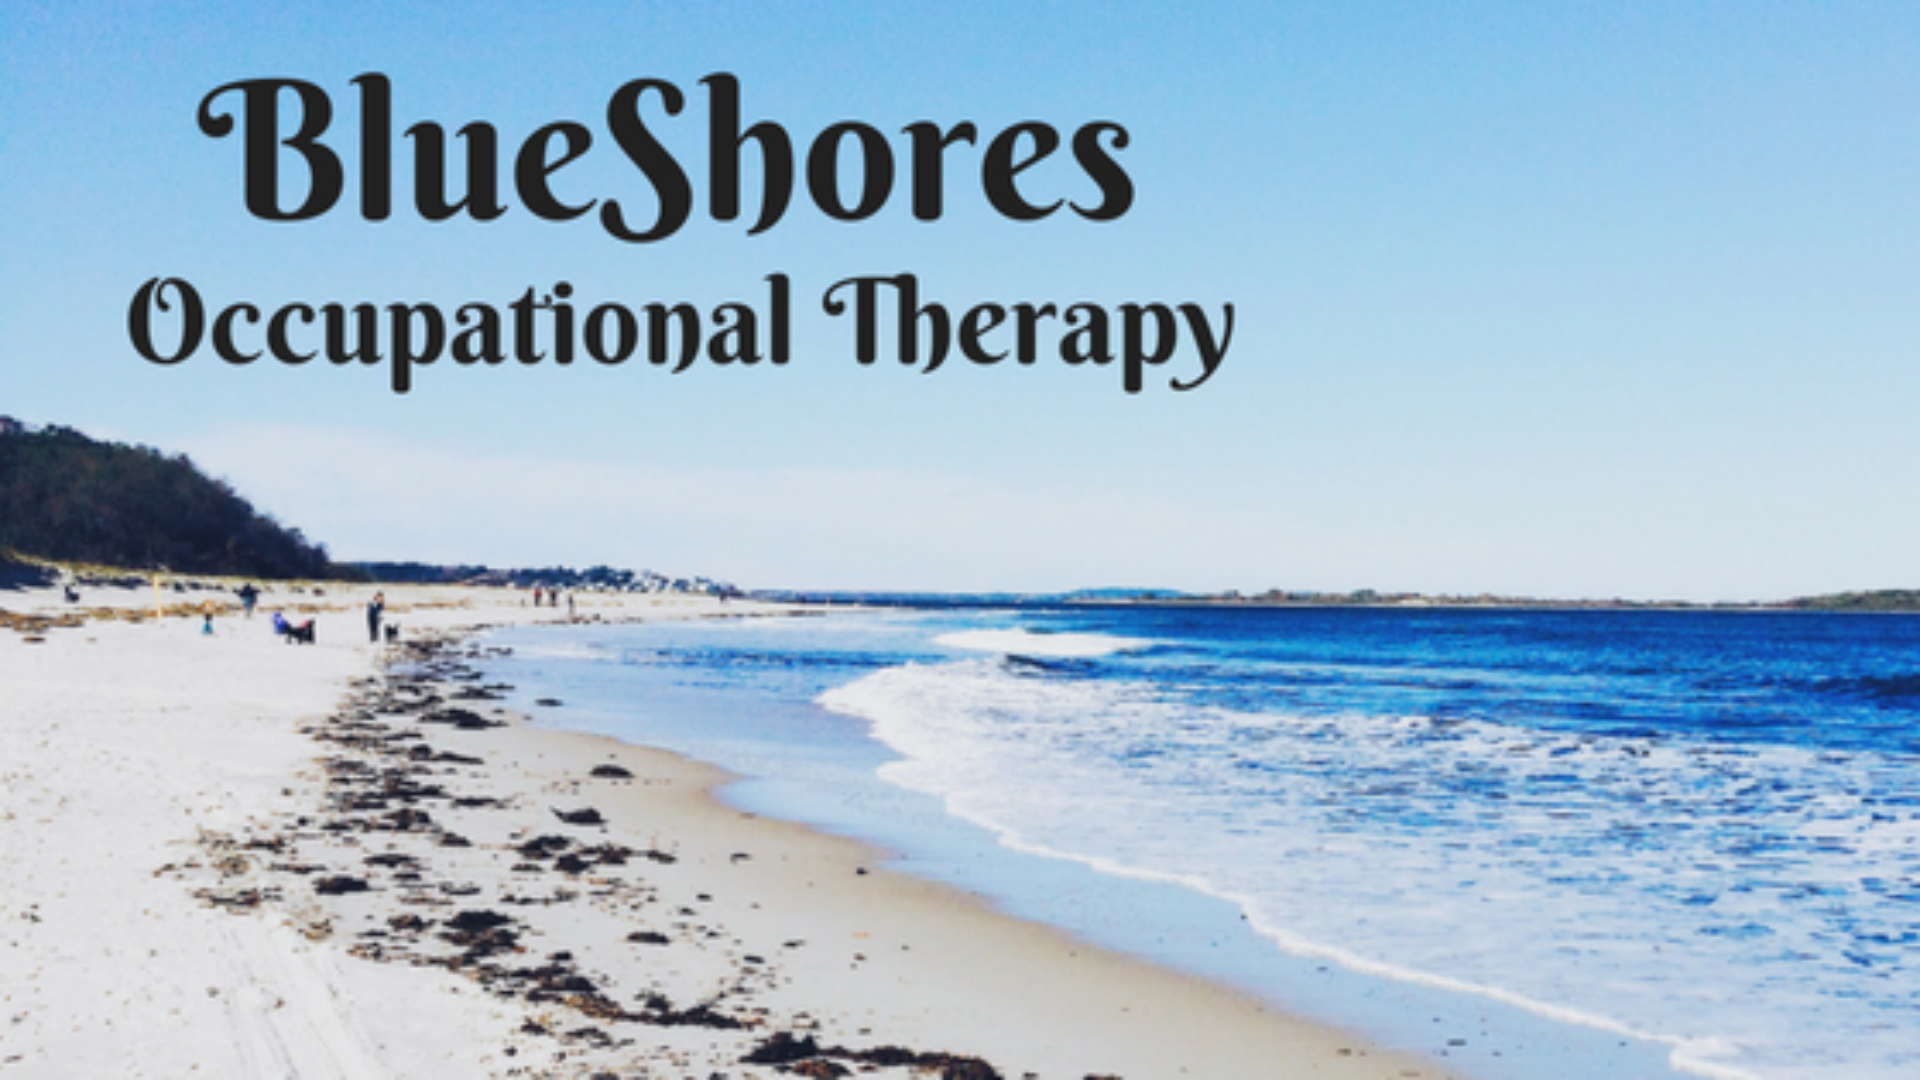 Blue Shores Occupational Therapy